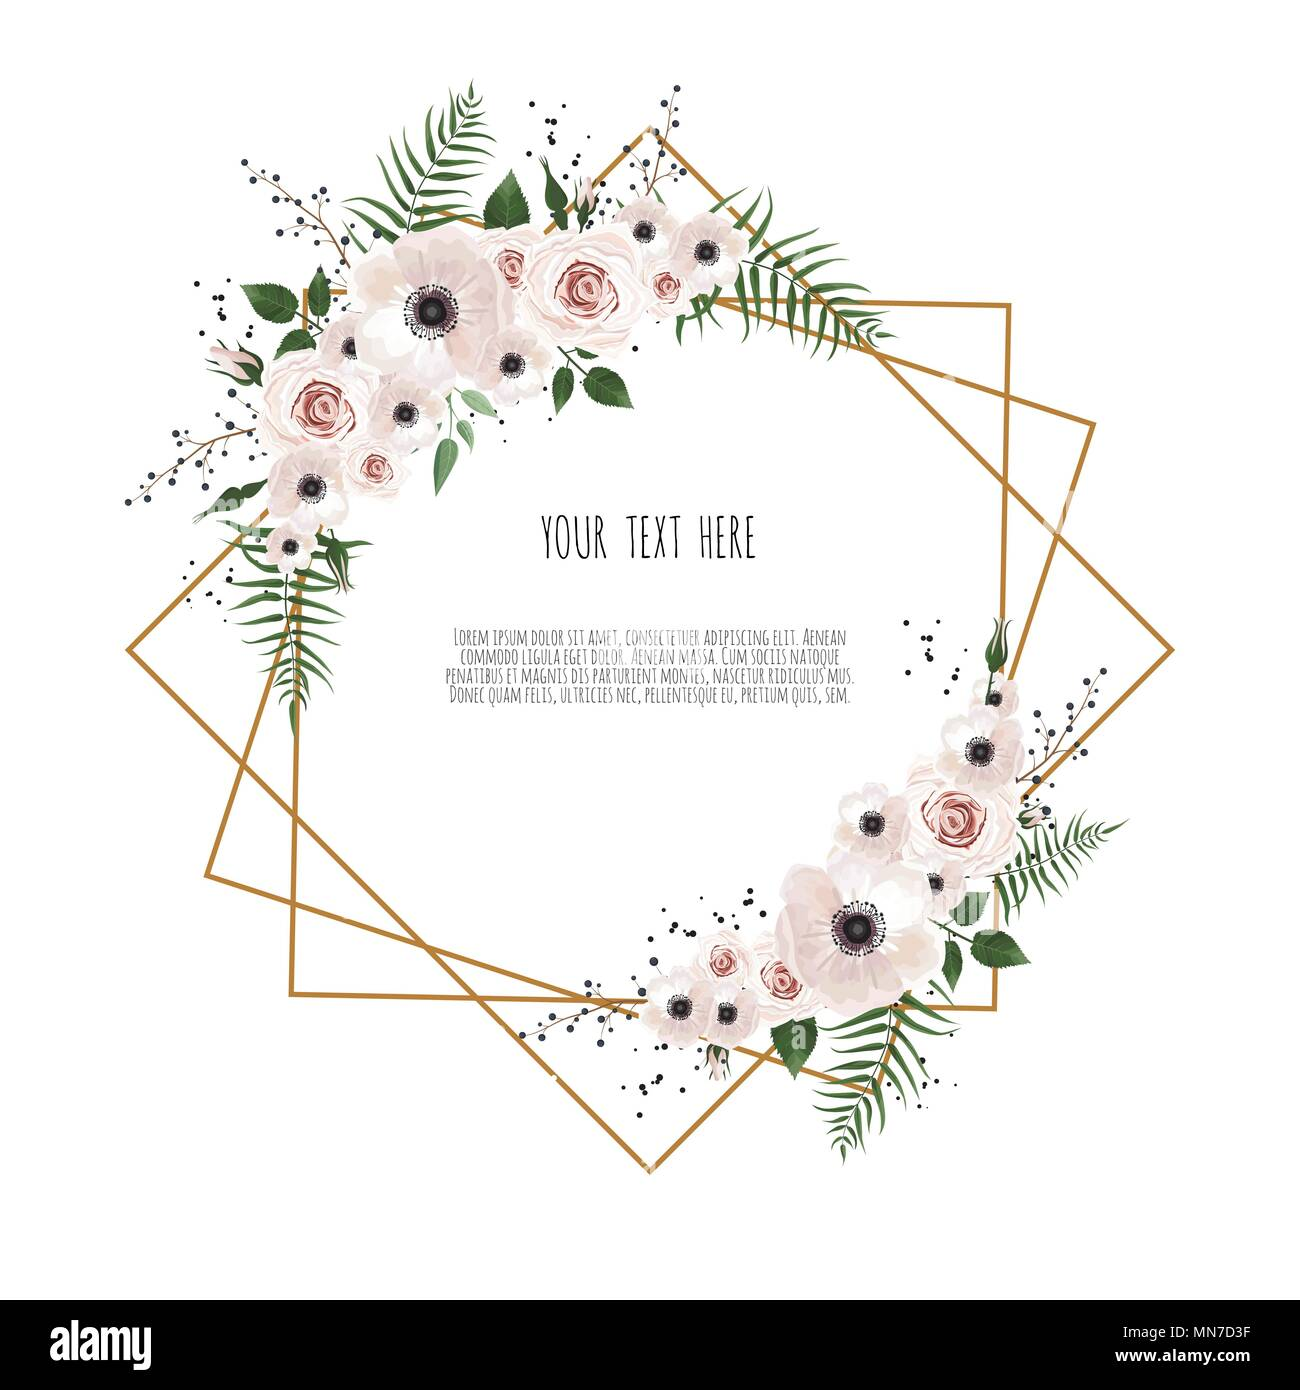 Card with flowers and geometrical frame floral poster invite card with flowers and geometrical frame floral poster invite vector decorative greeting card invitation design background m4hsunfo